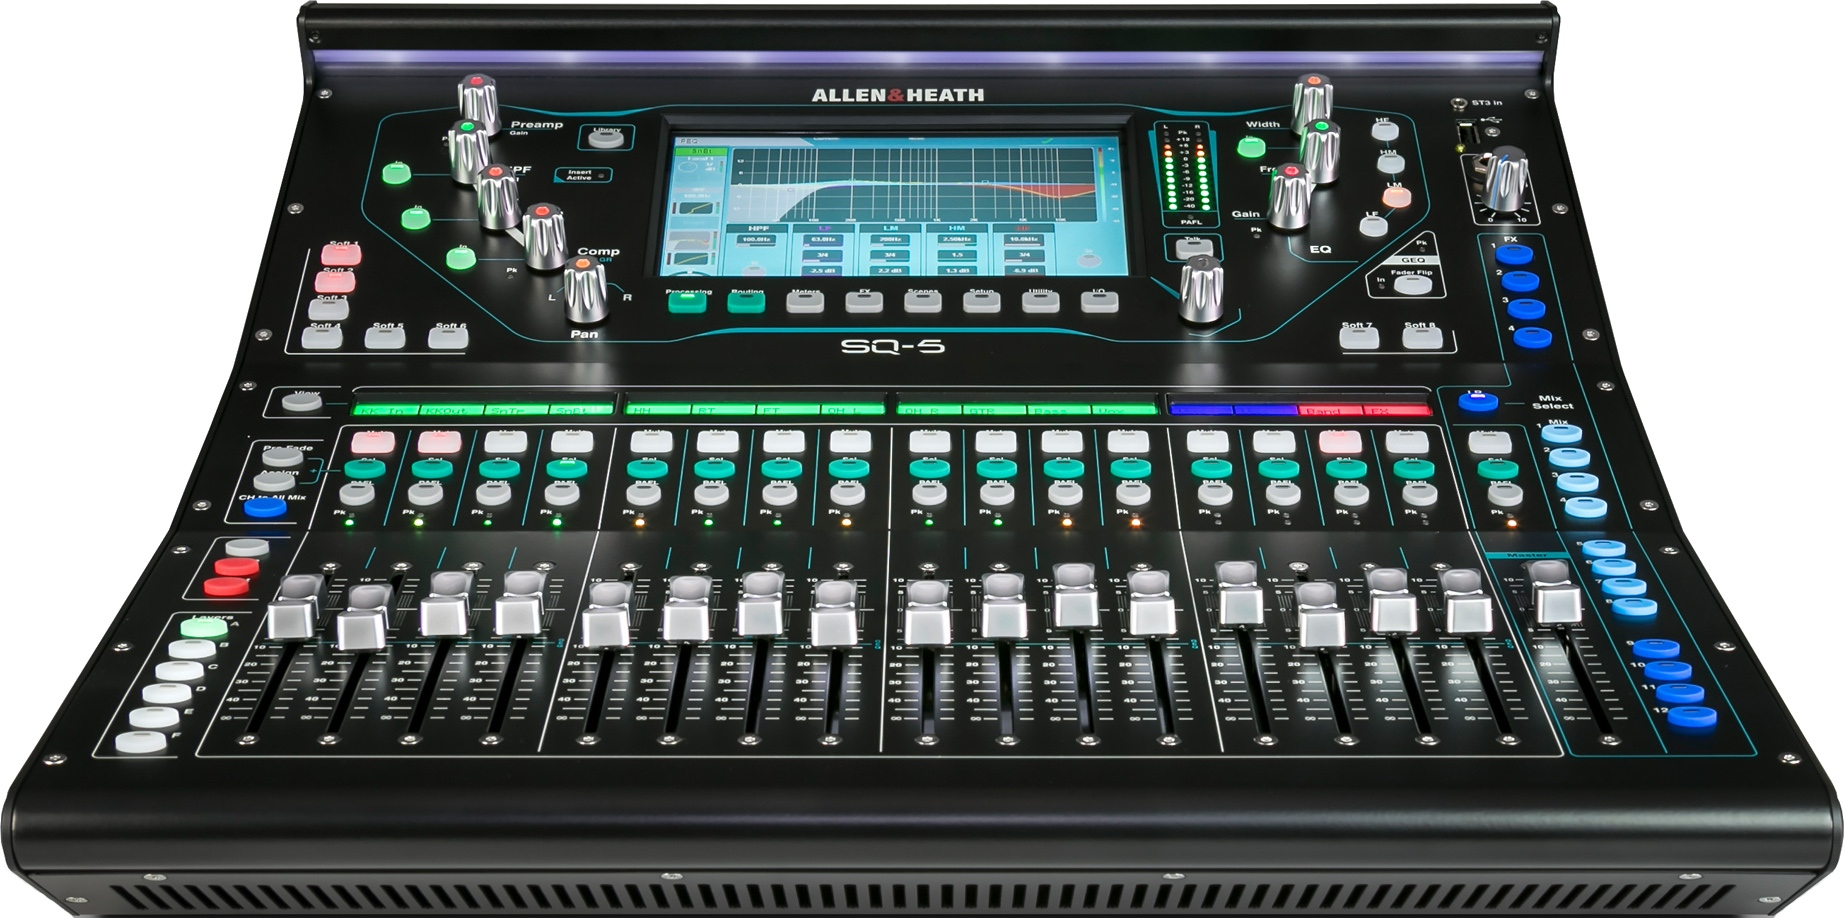 Allen-Heath-SQ-5.jpg#asset:357